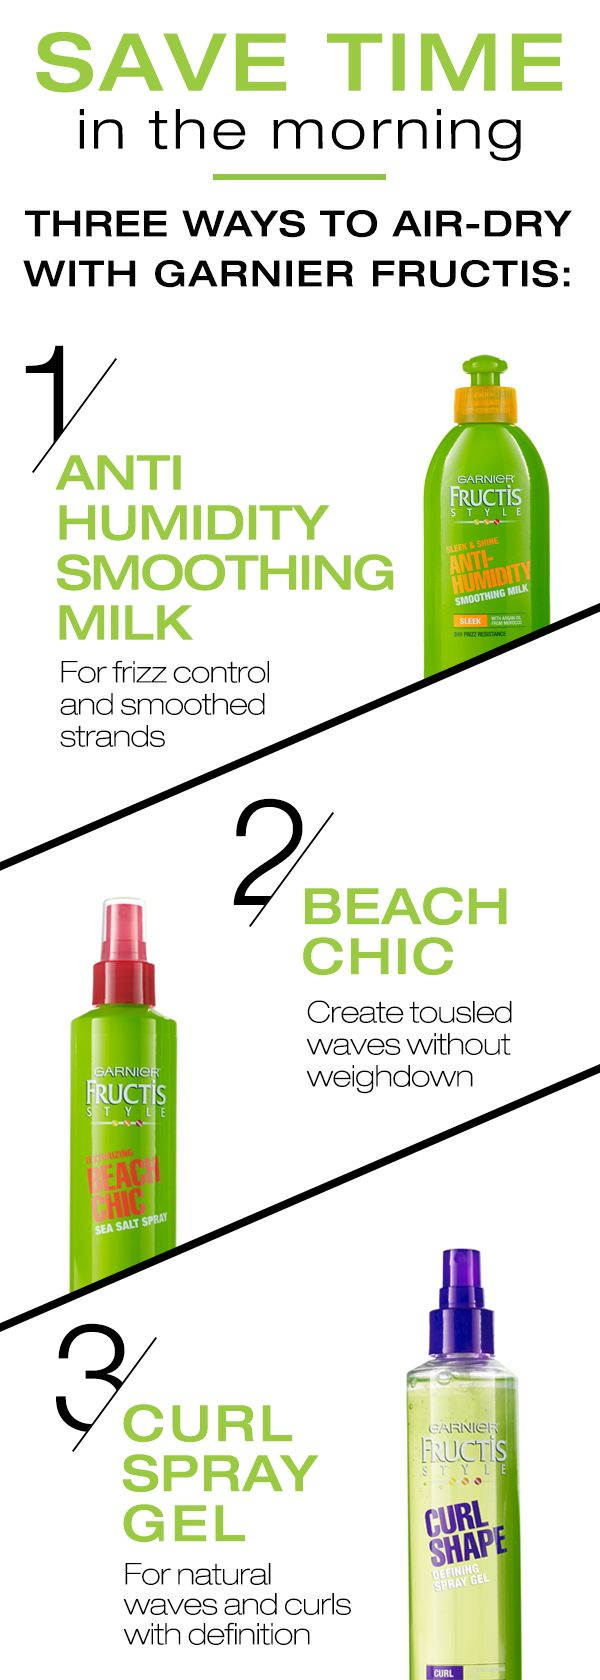 If you're in a time crunch in the morning, air drying your hair can be a big time saver! To stay stylish even against the clock, look to these three Garnier Fructis products that give your hair volume, texture and movement.